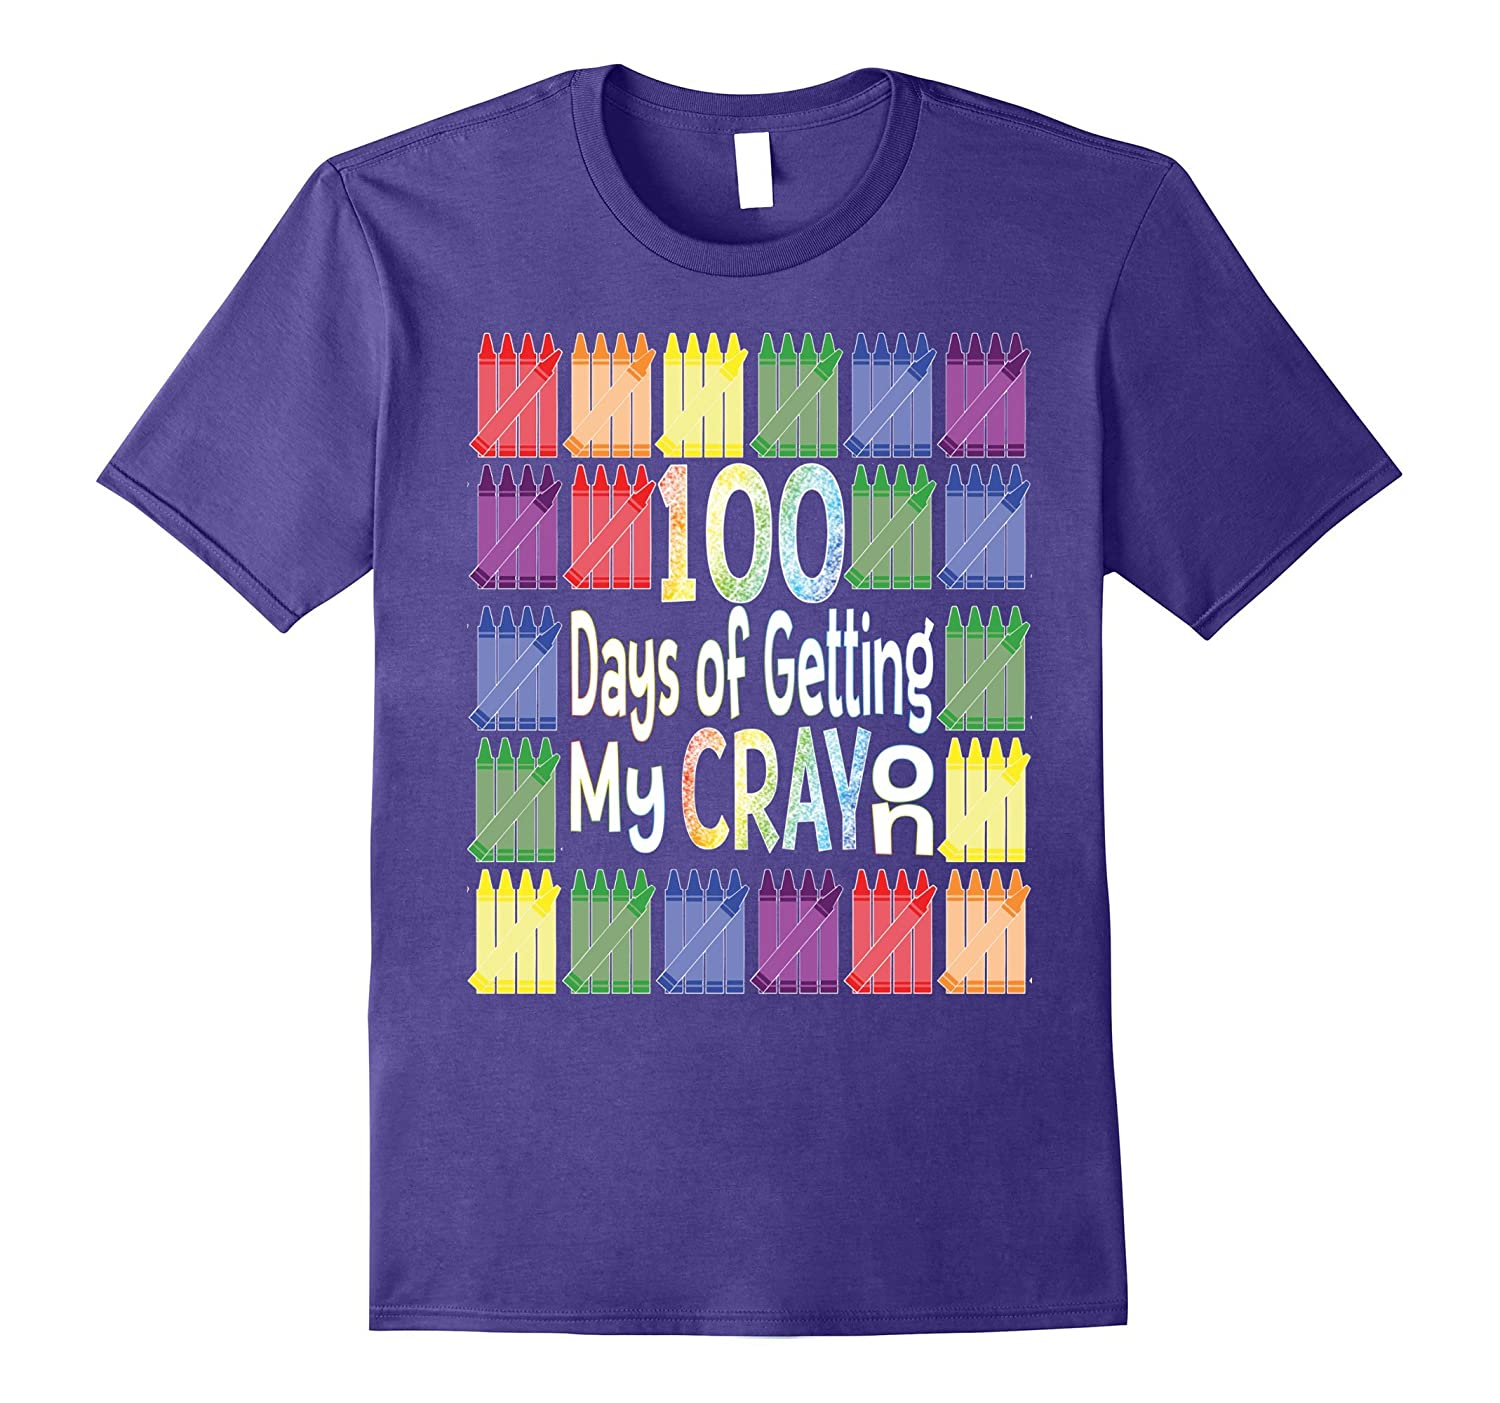 100 Days of School Get My Cray On Tshirt-Art